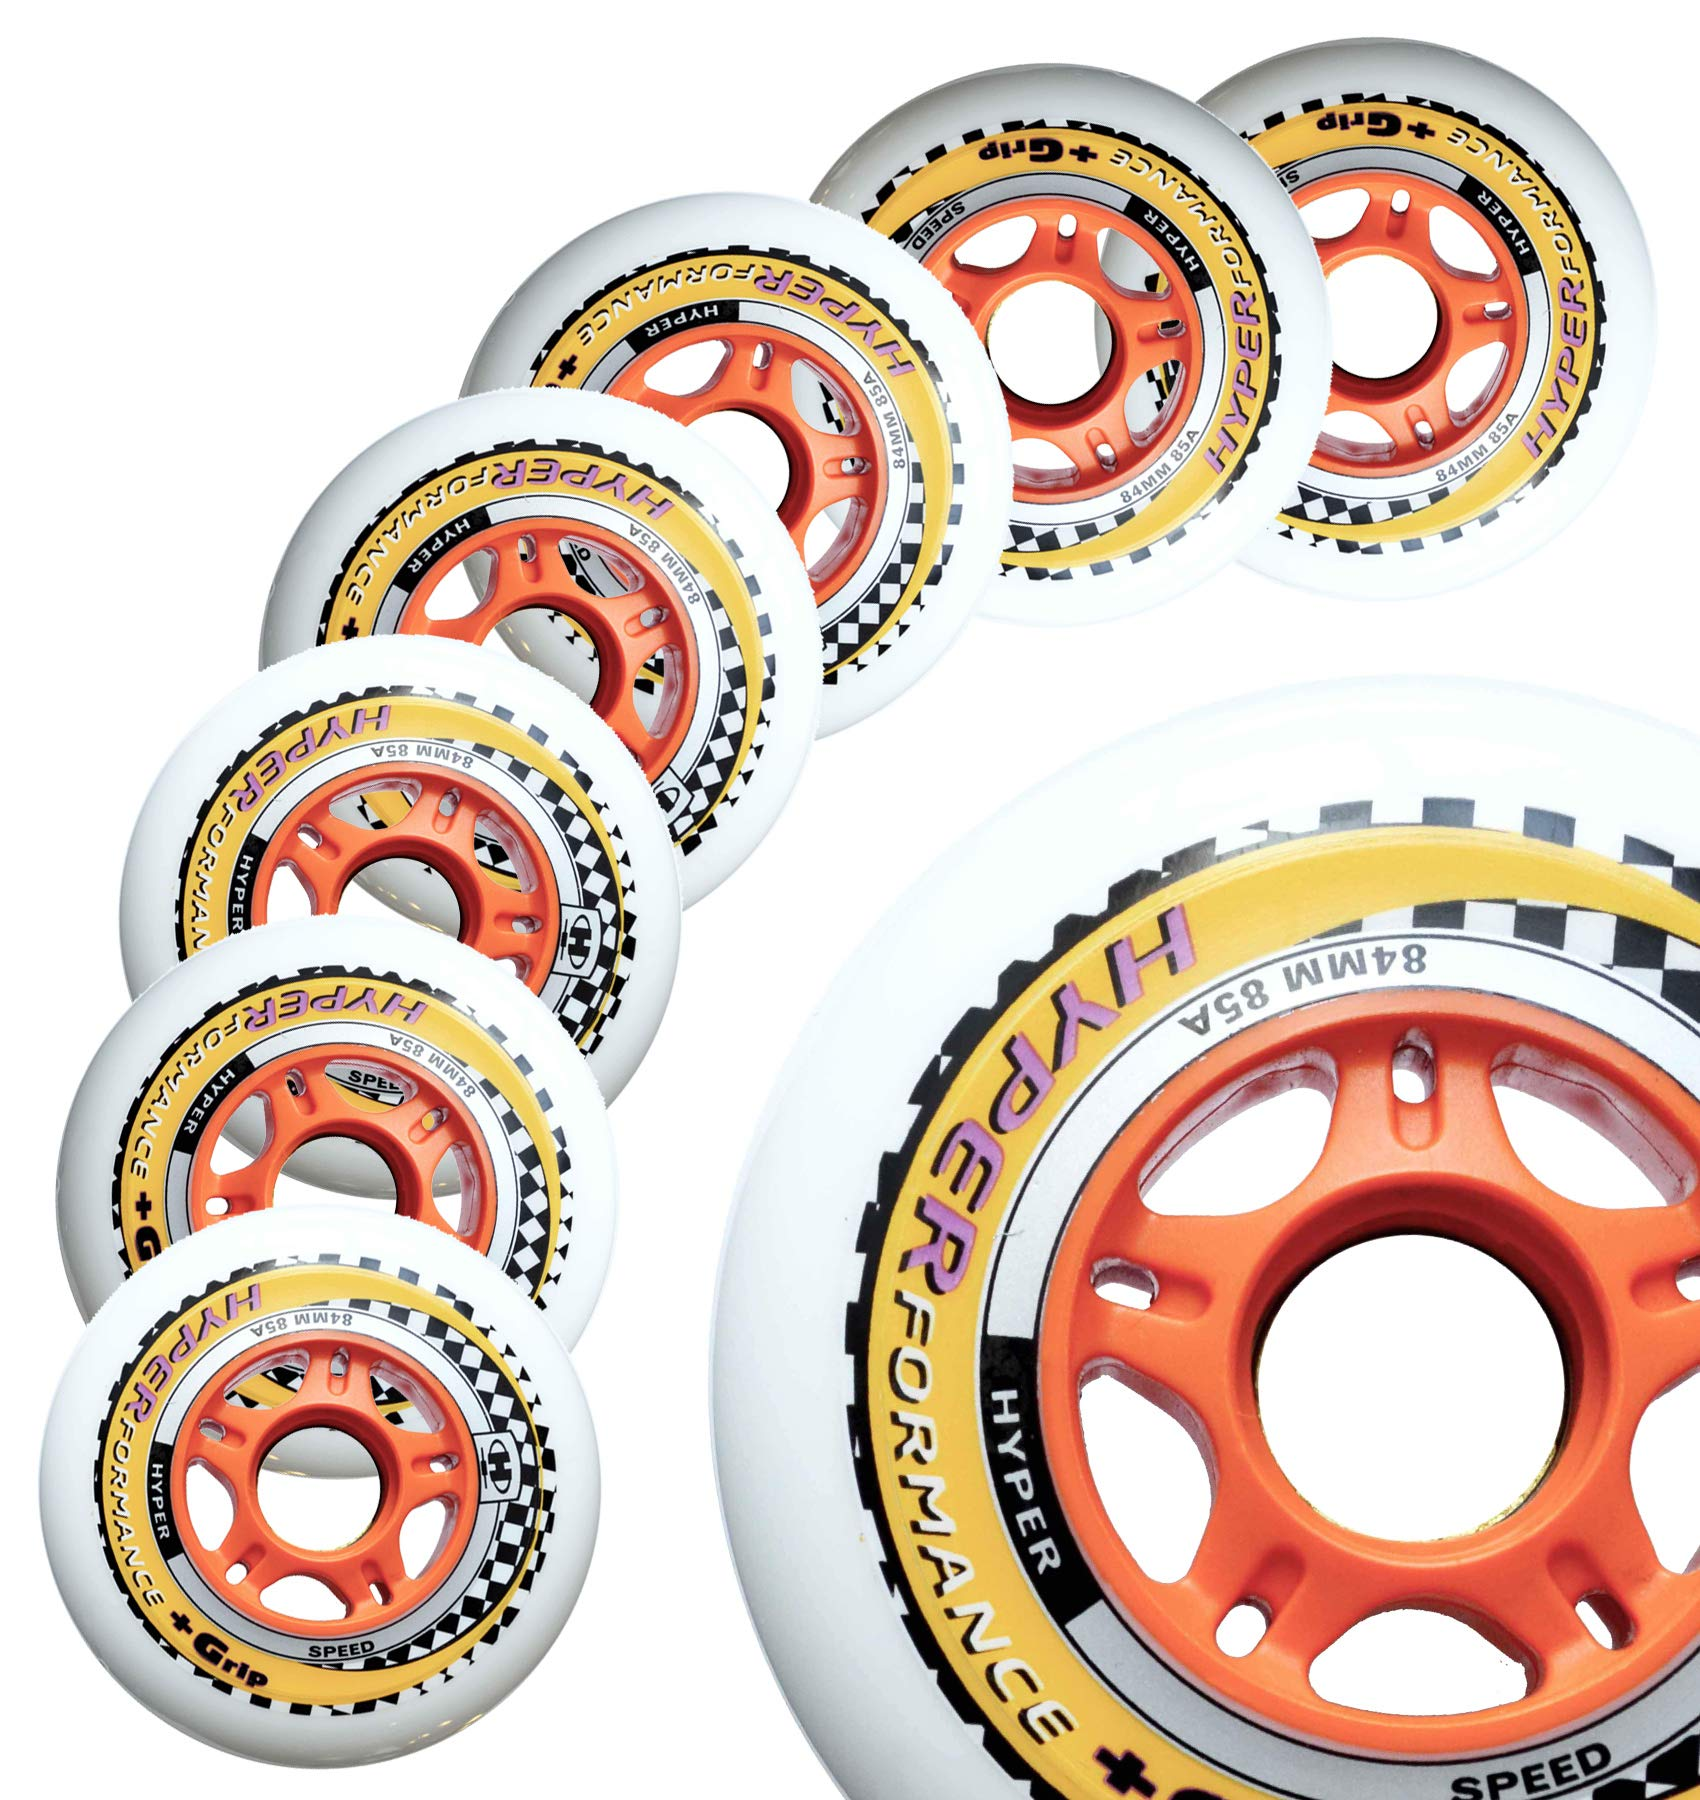 Inline Race Skate Wheels Hyper HYPERFORMANCE+G - 8 Wheels - 85A - Sizes: 84MM, 90MM, 100MM, 110MM - Speed Skating, Fitness and Outdoor Recreational Wheels (80MM)